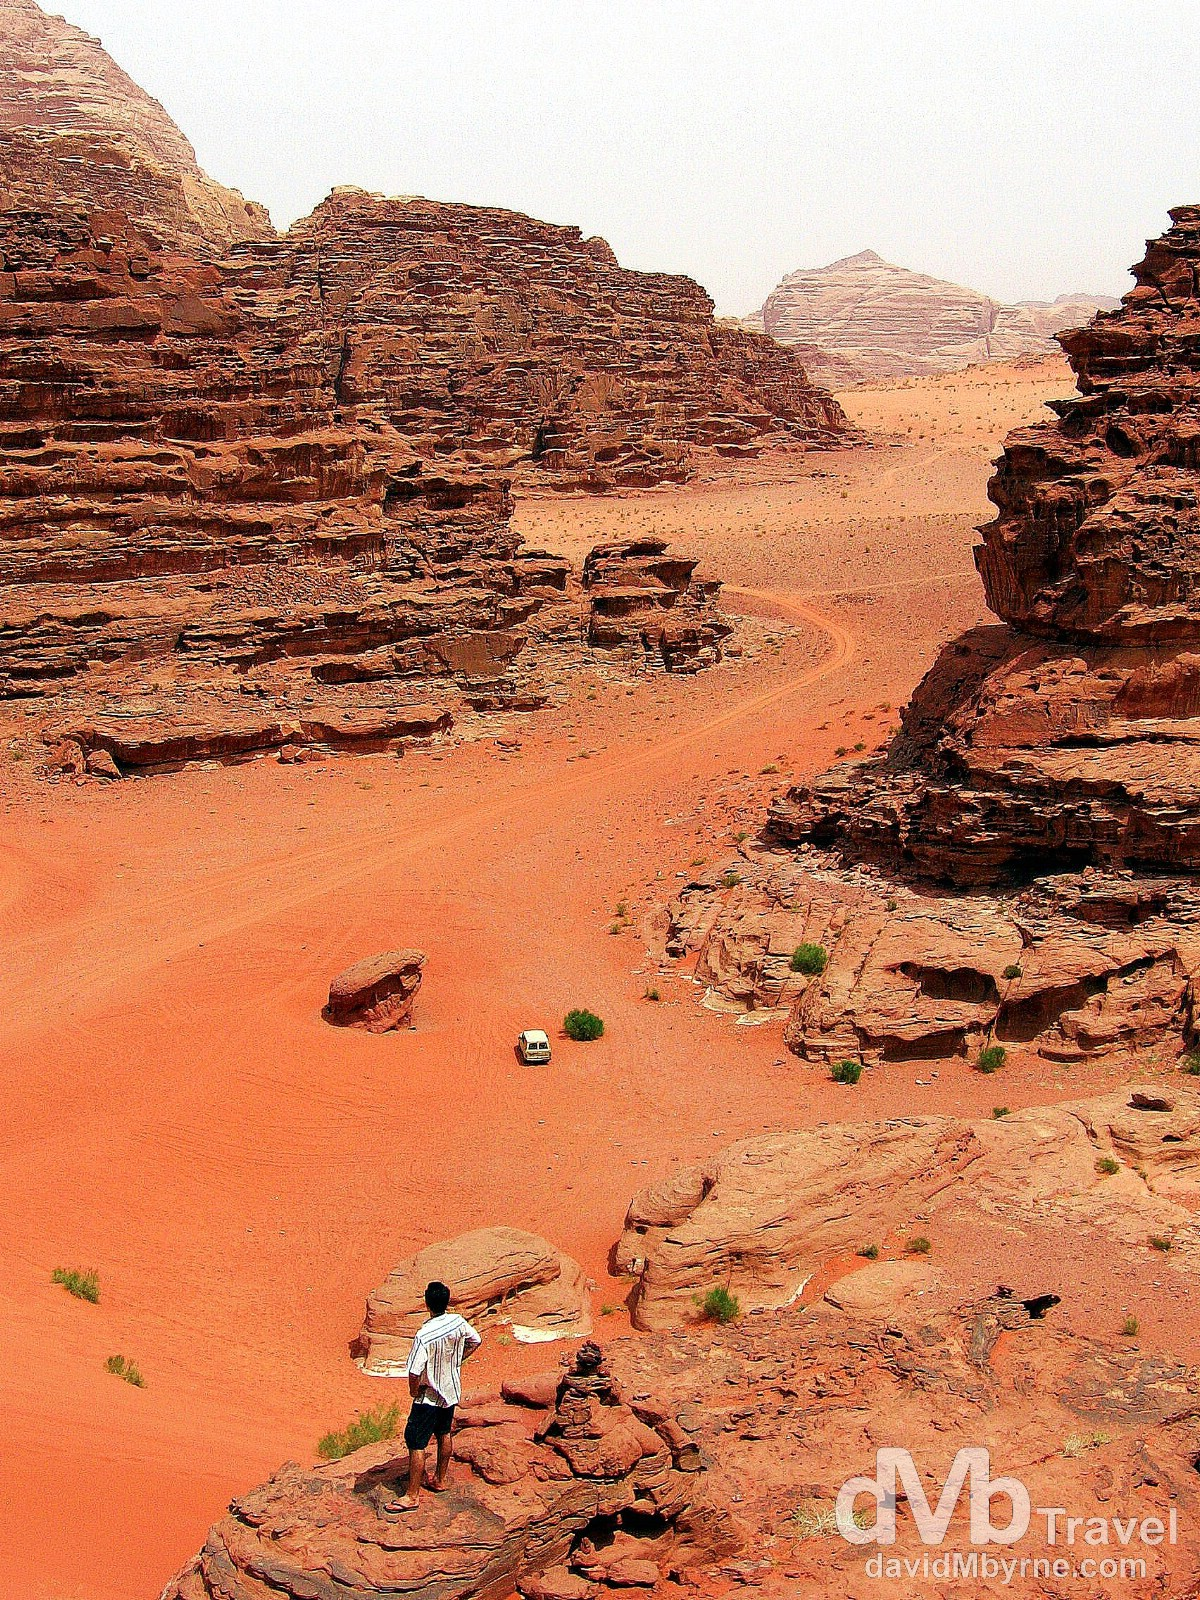 Taking in the splendour of Wadi Rum, Jordan. April 25, 2008.